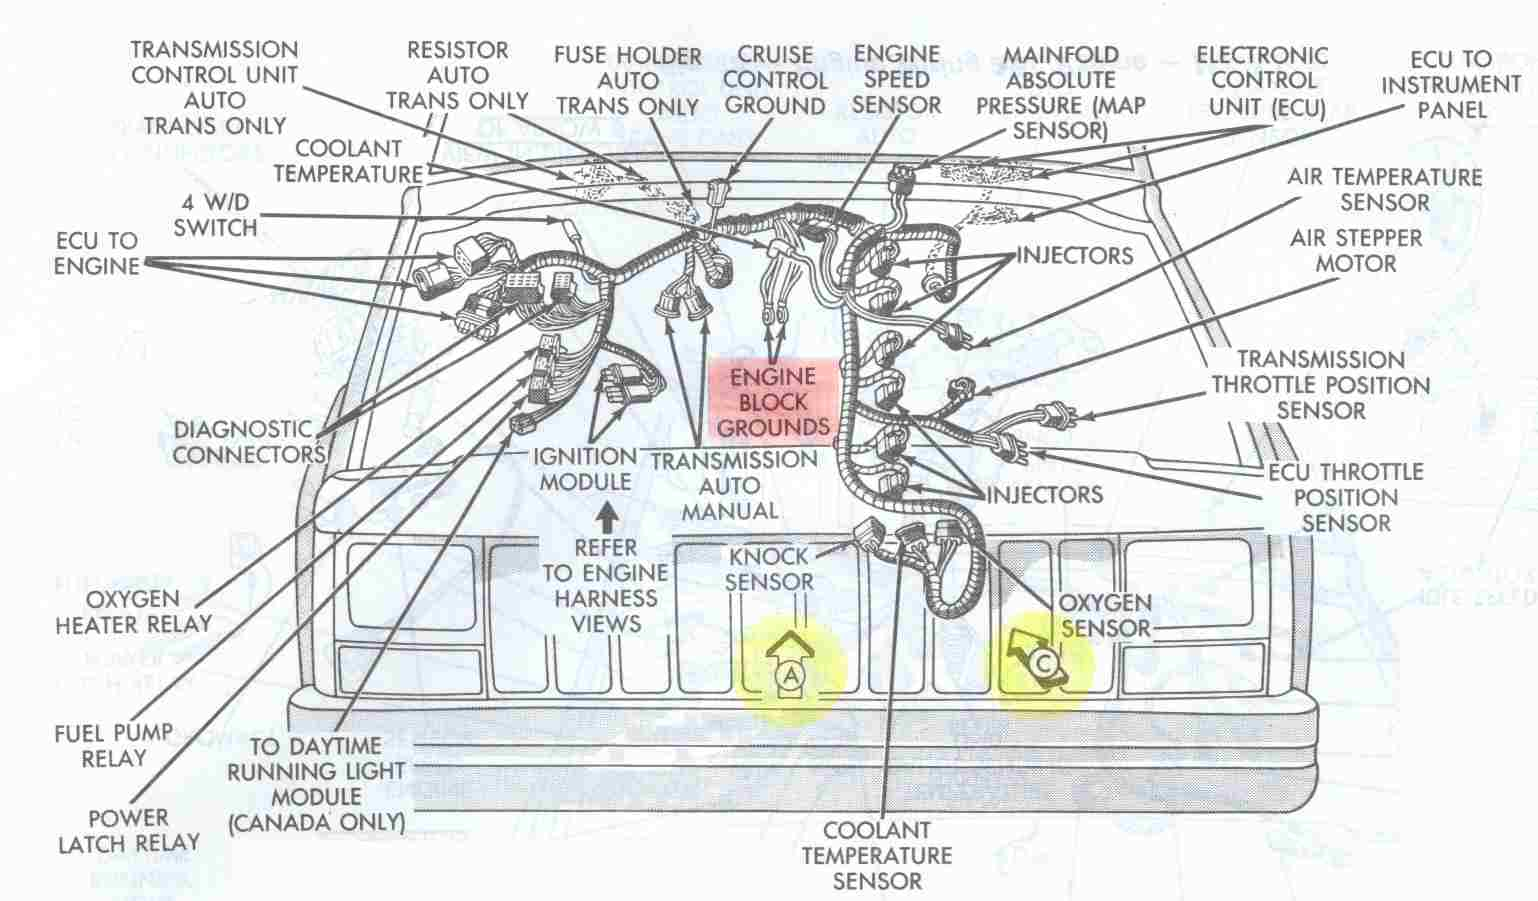 Electrical_Engine_Ground_Points_Overview jeep cherokee electrical diagnosing erratic behavior of engine wiring diagram for 1998 jeep cherokee at pacquiaovsvargaslive.co